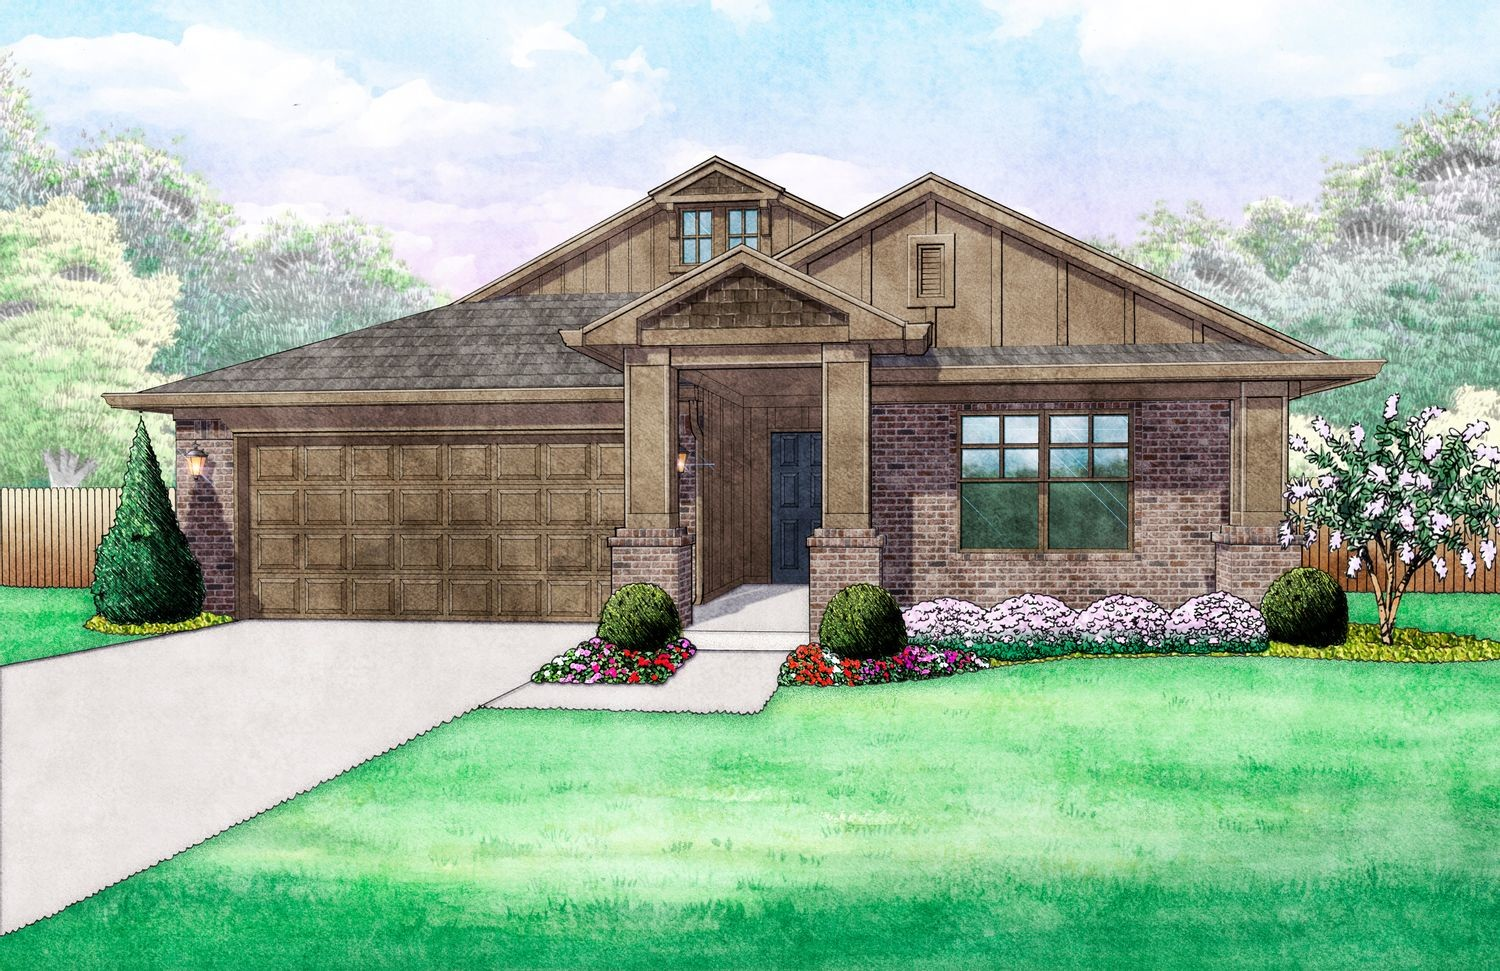 Move In Ready New Home In Oasis Ranch Community